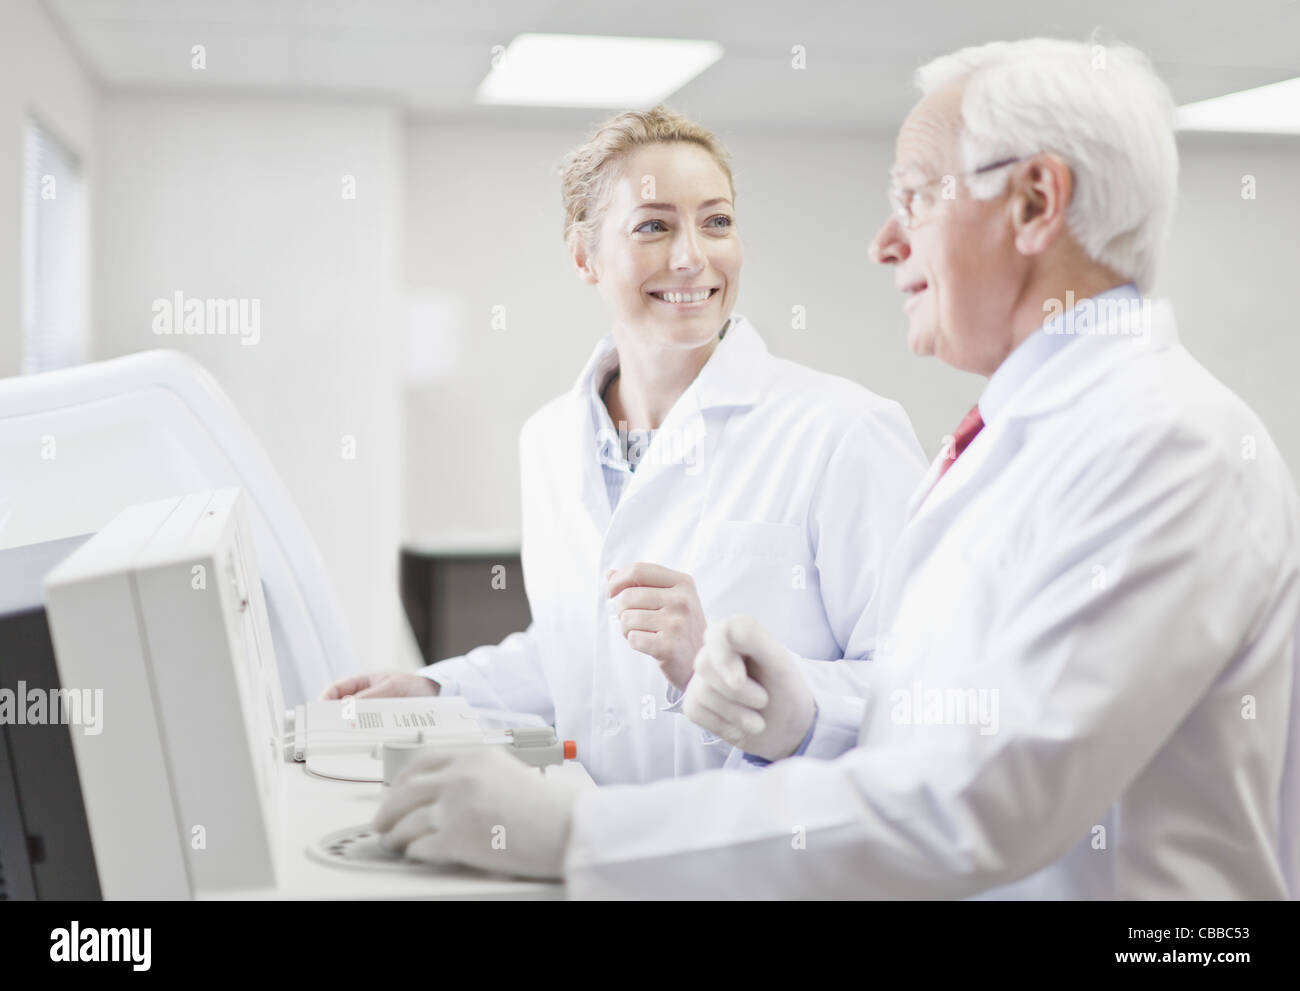 Scientists working in pathology lab - Stock Image